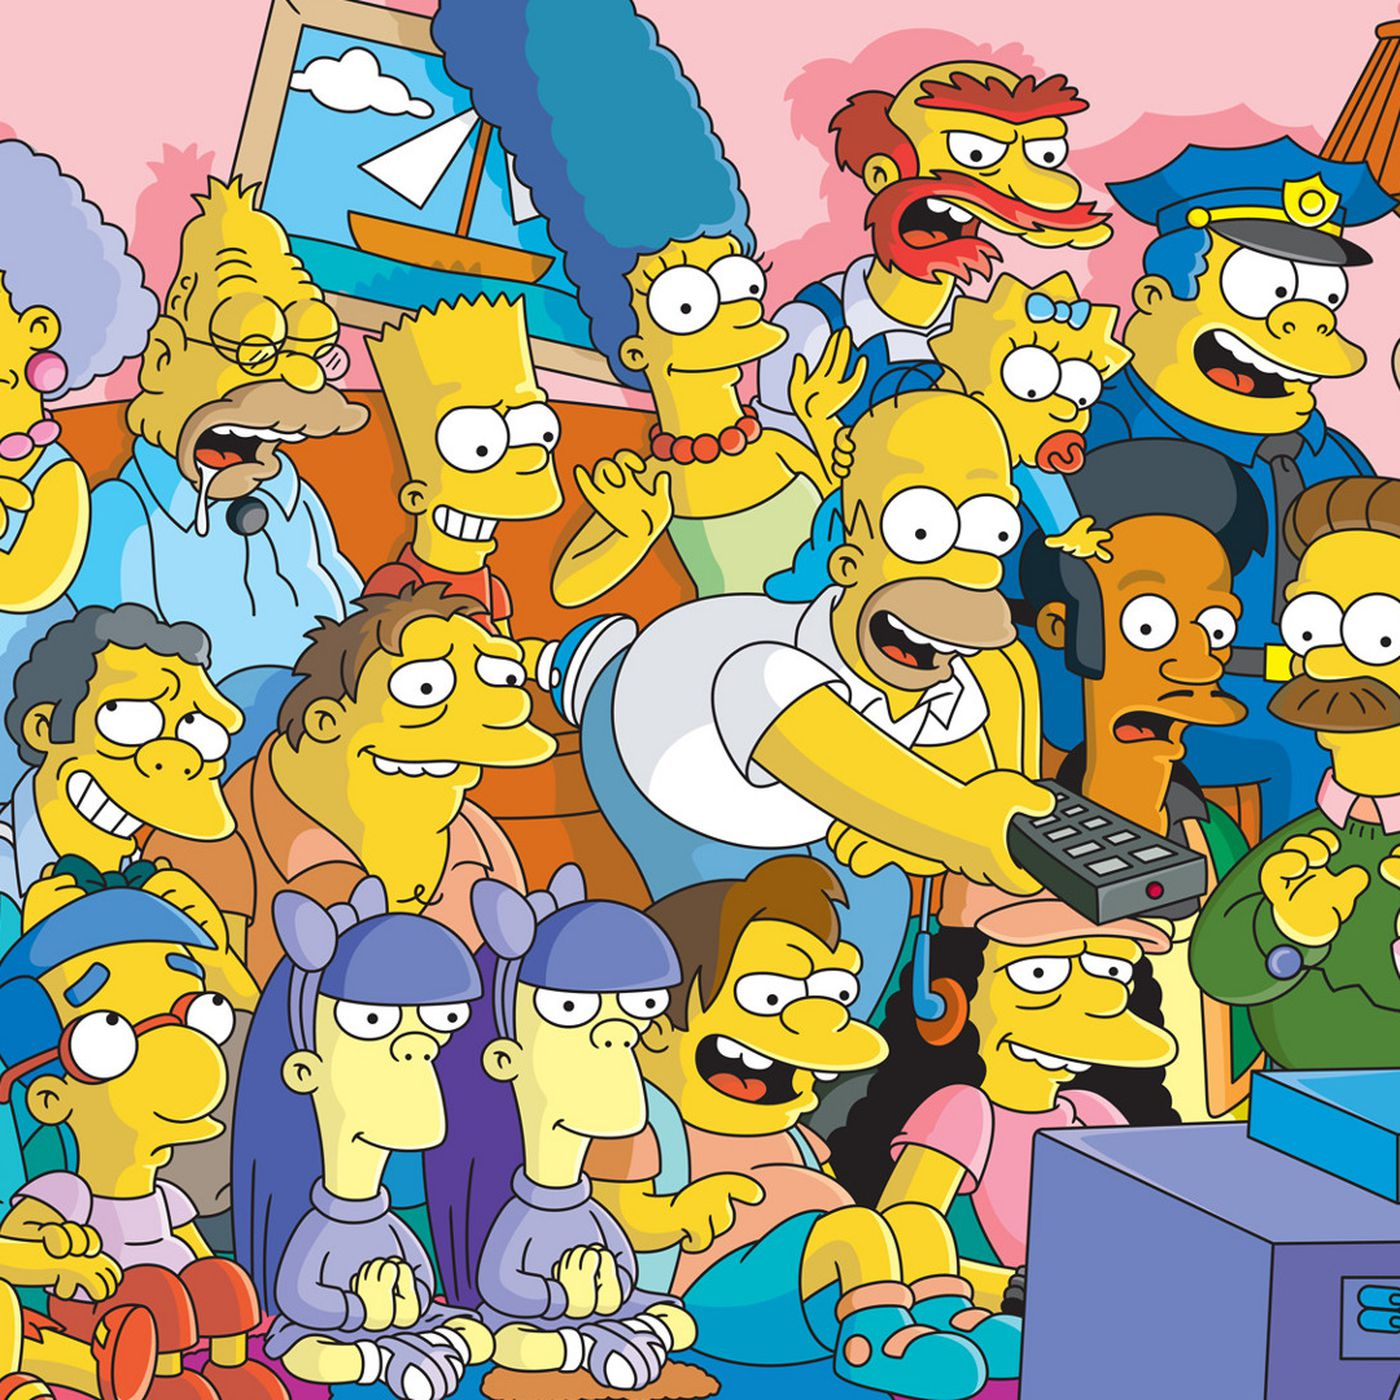 Animated Porn Gif Lisa Simpsons how an episode of the simpsons is made | the verge